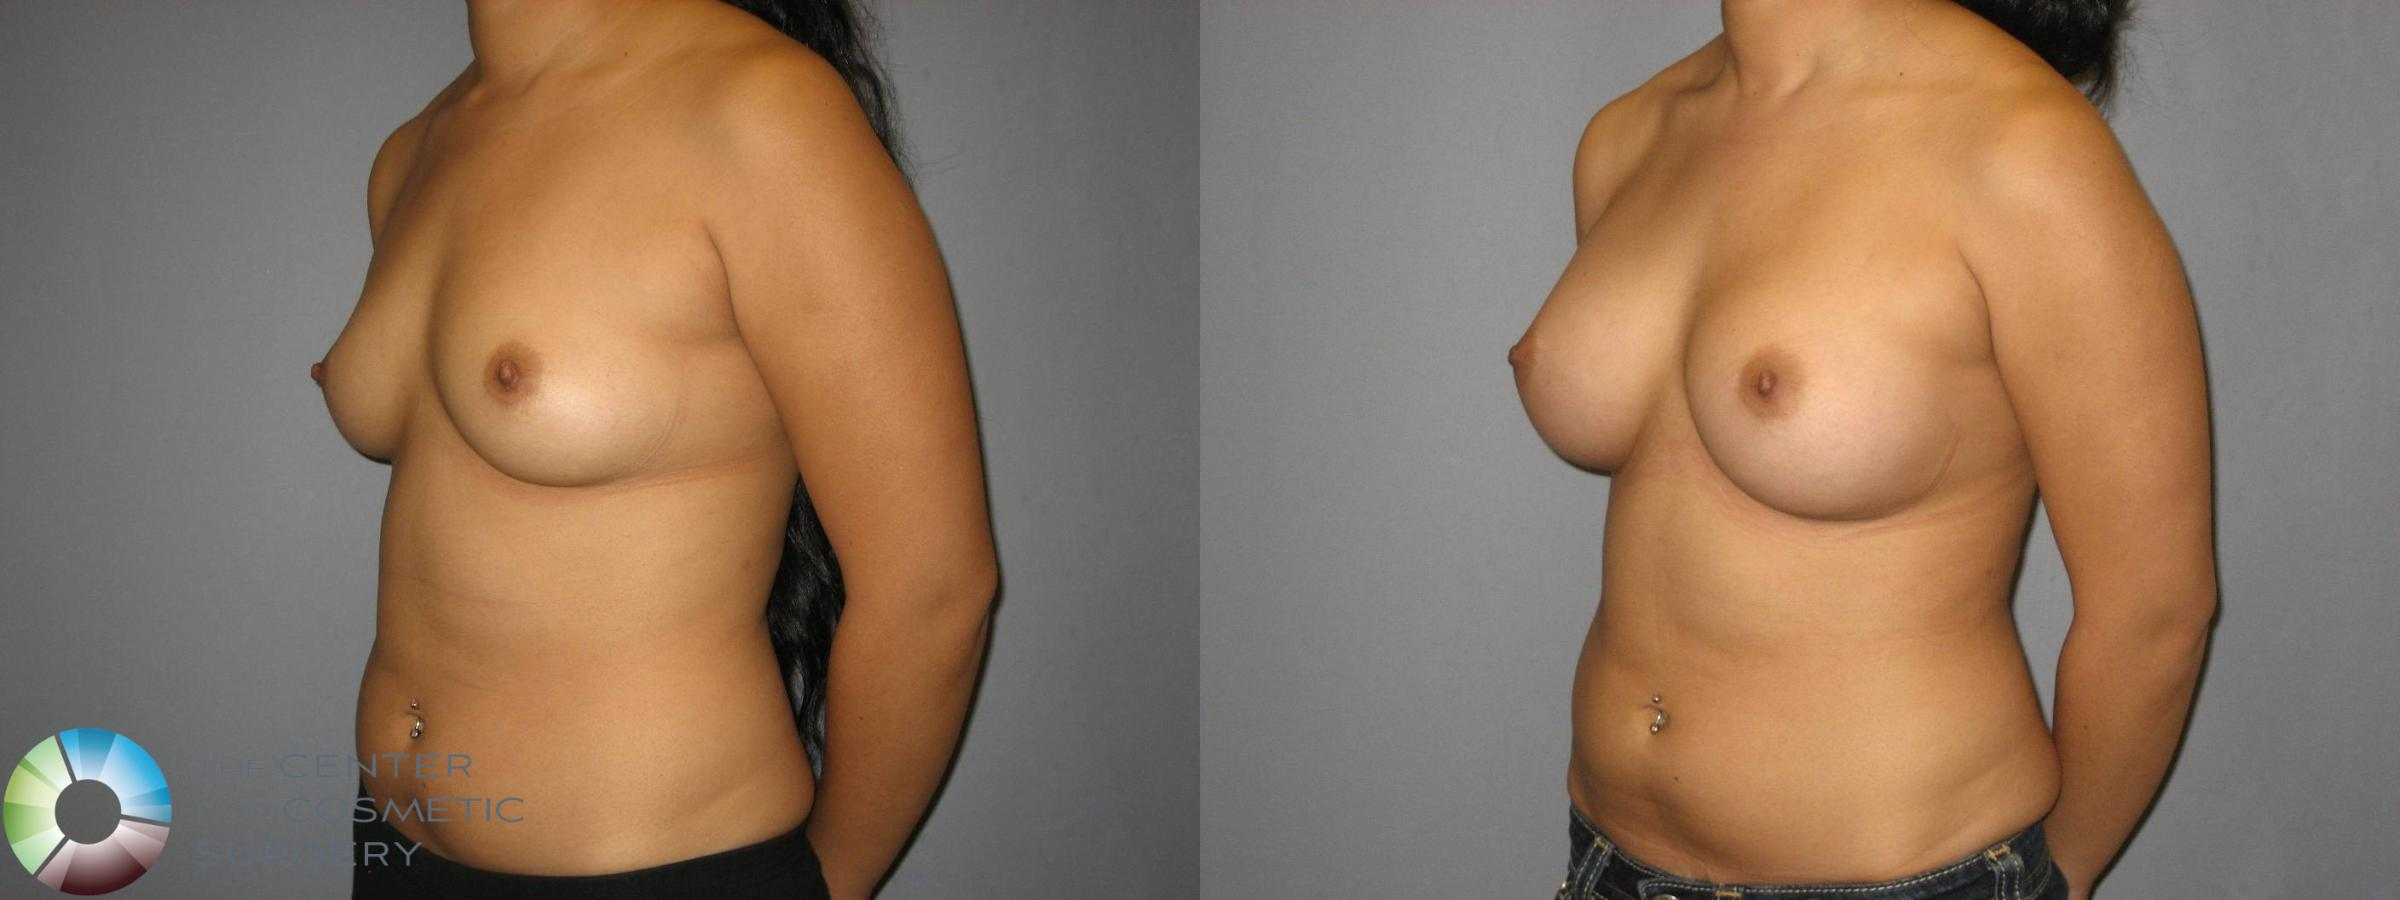 Breast Augmentation Case 360 Before & After View #2 | Golden, CO | The Center for Cosmetic Surgery